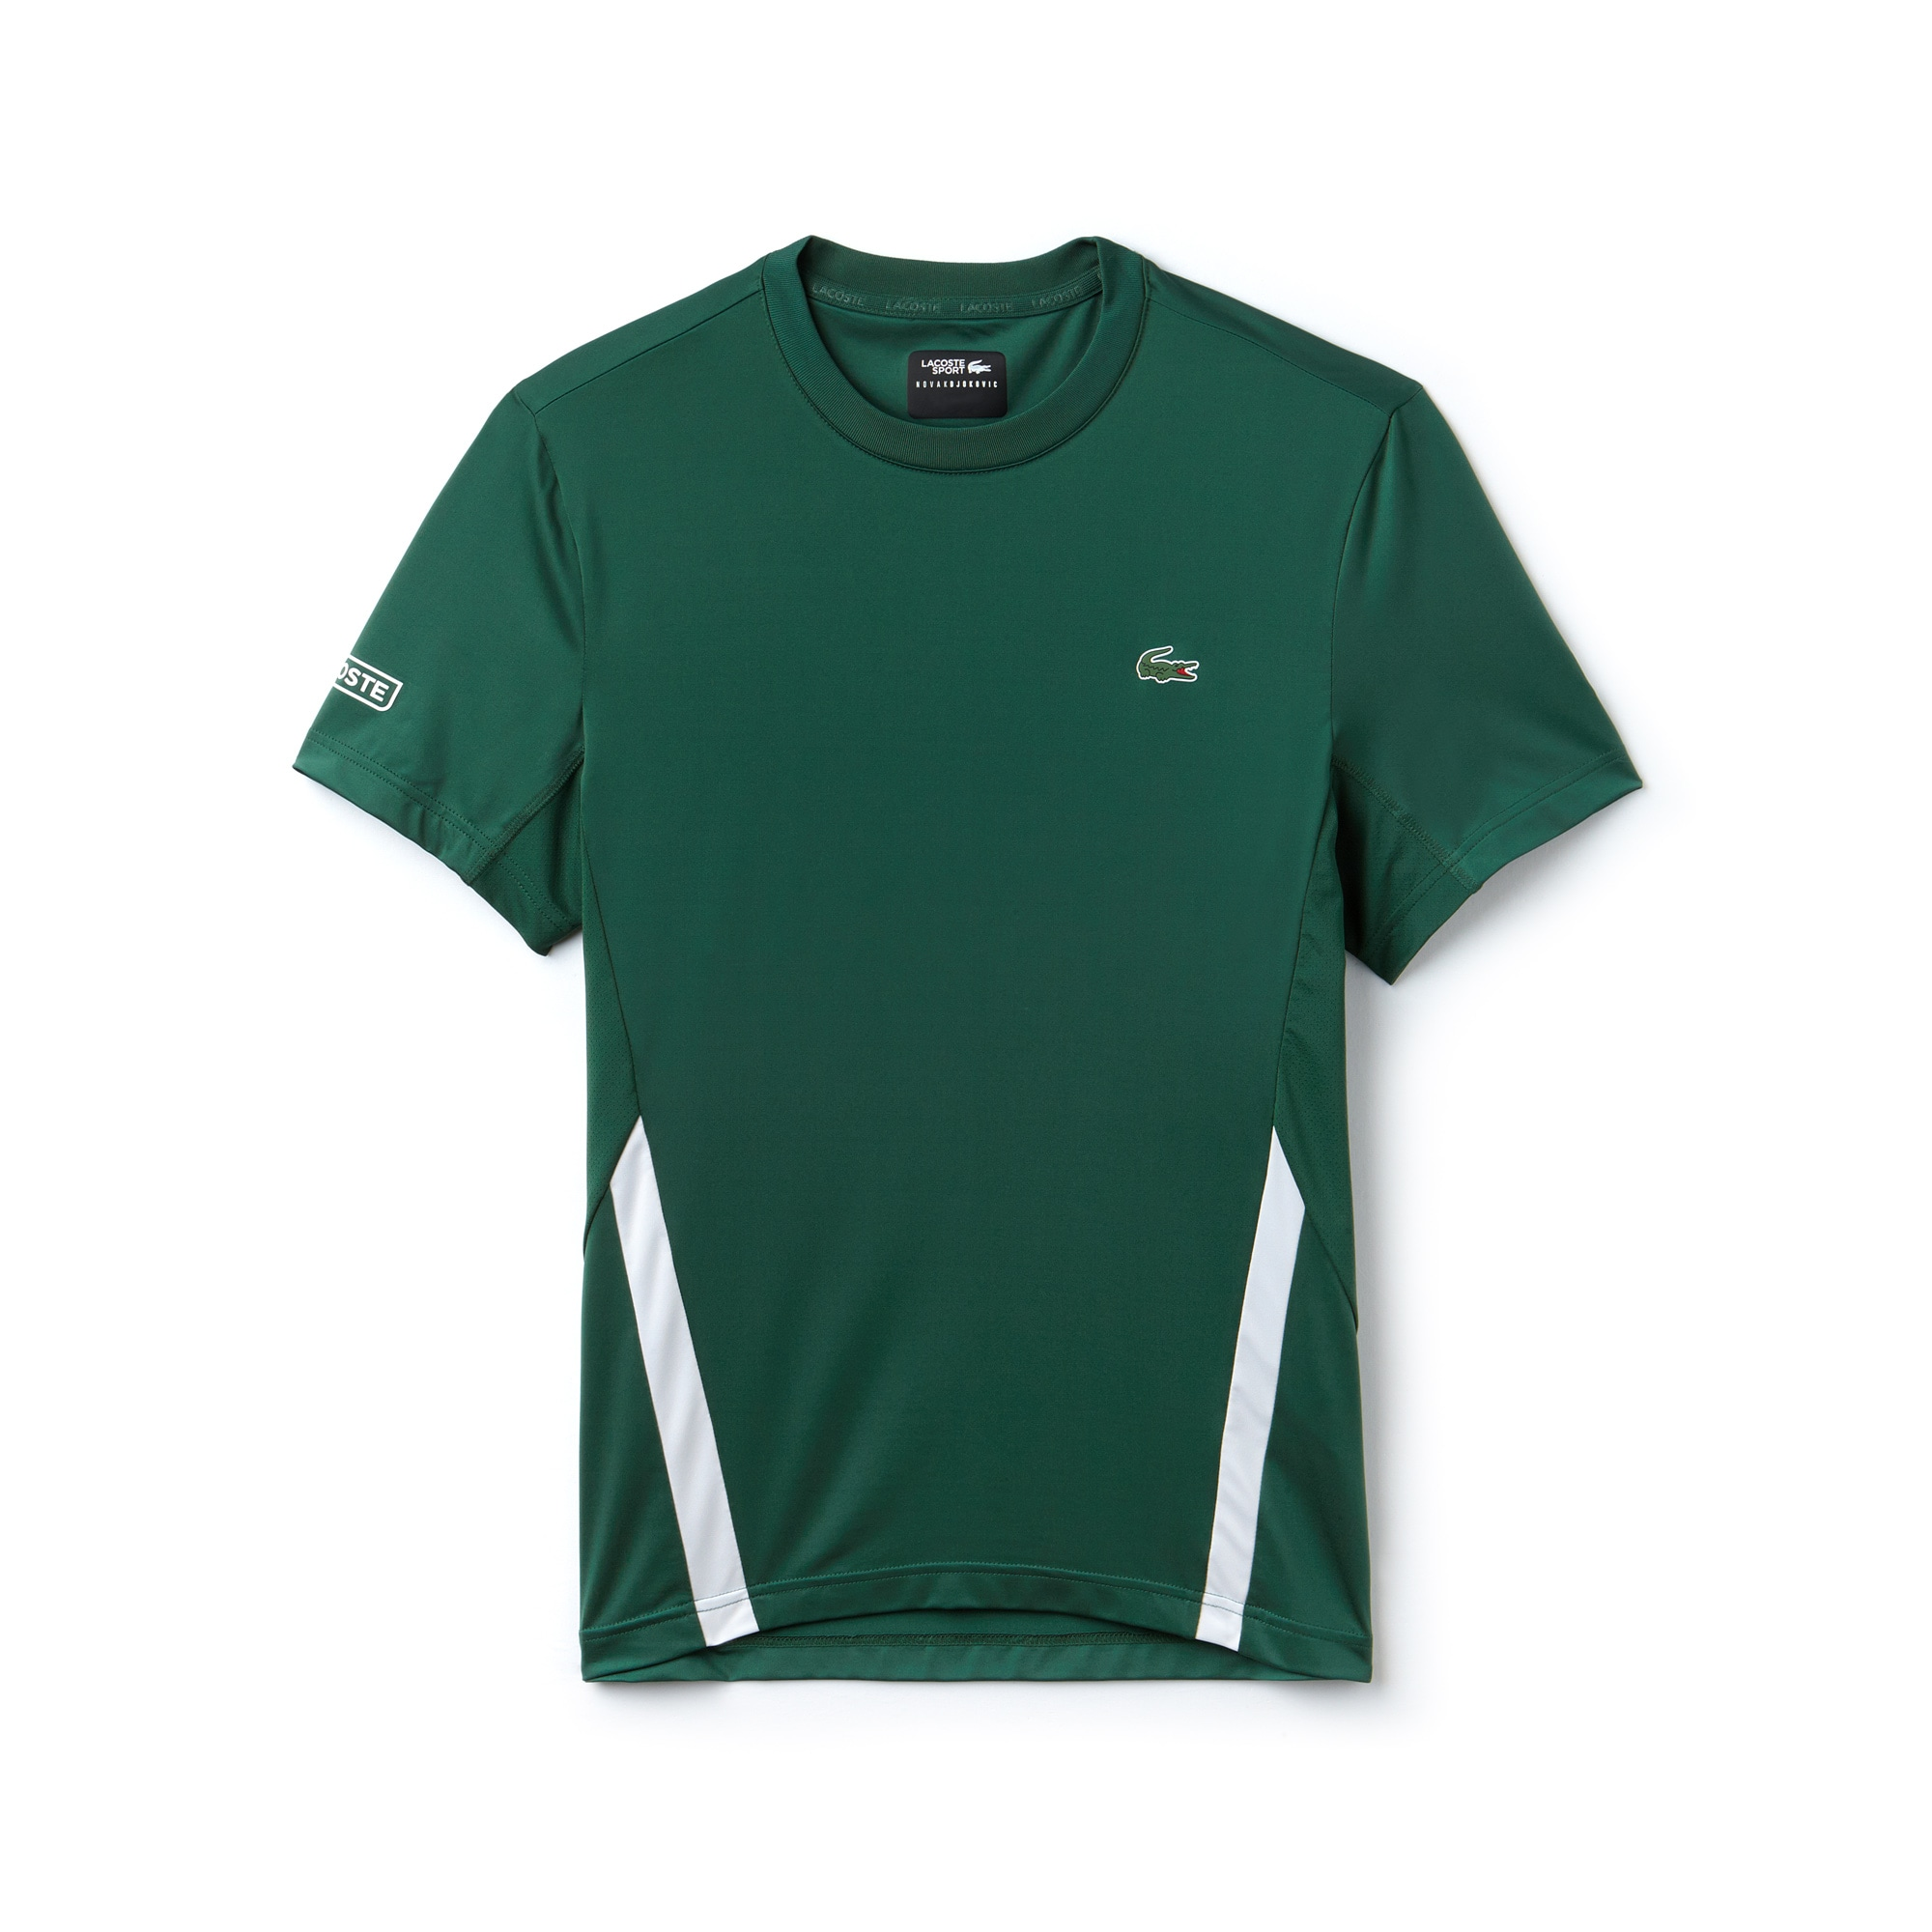 Men's Lacoste SPORT NOVAK DJOKOVIC-OFF COURT COLLECTION Crew Neck Stretch Technical Jersey T-shirt